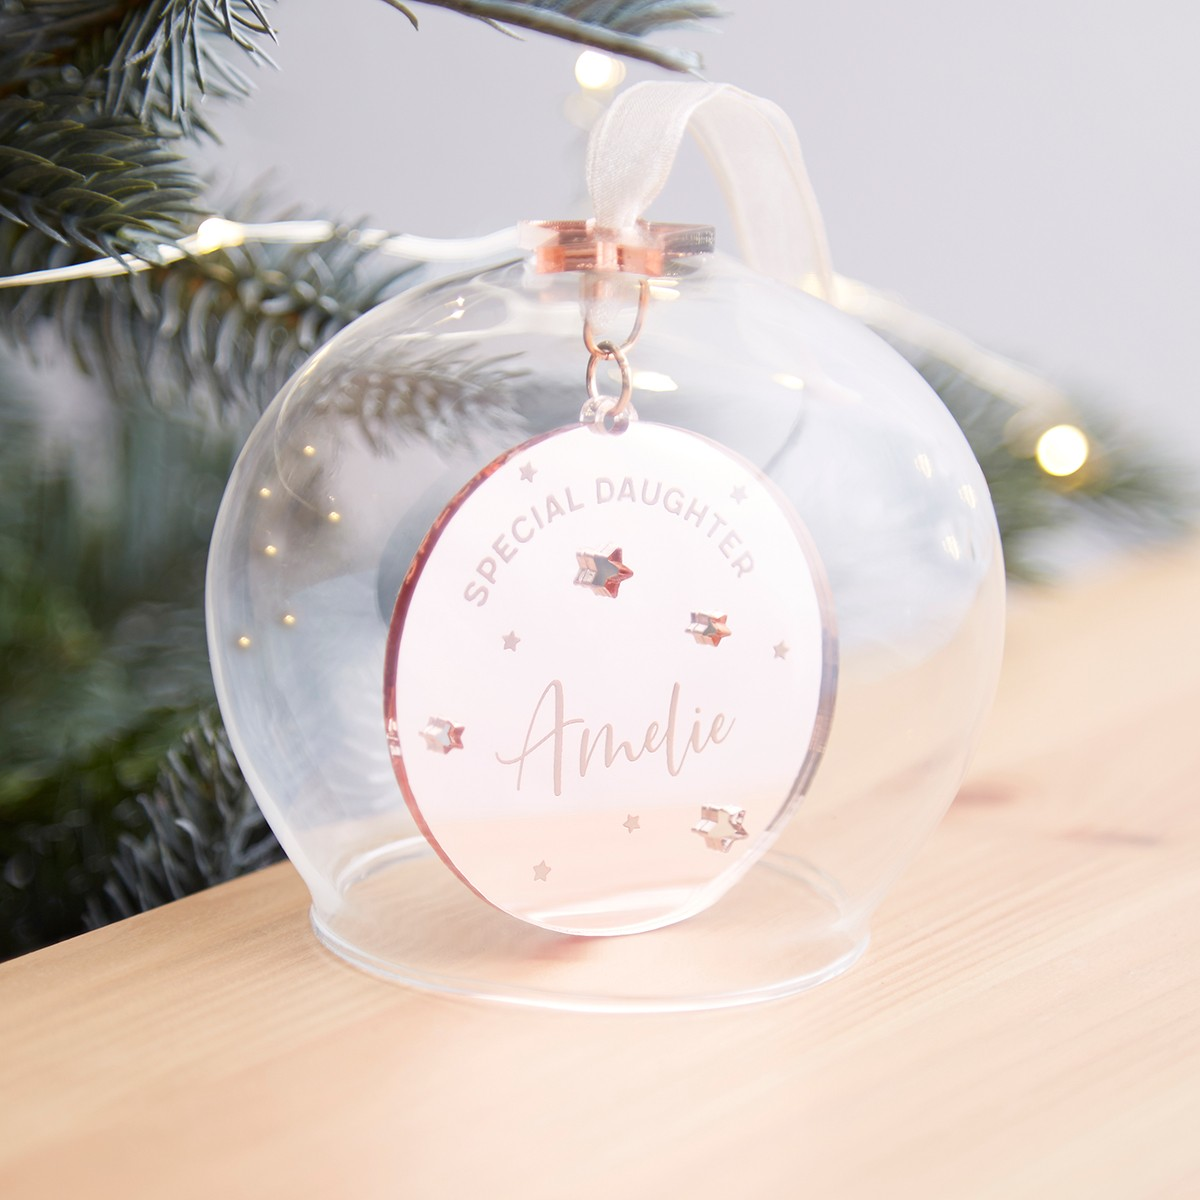 e06a1e3c Daughter Personalised Christmas Bauble | norma&dorothy